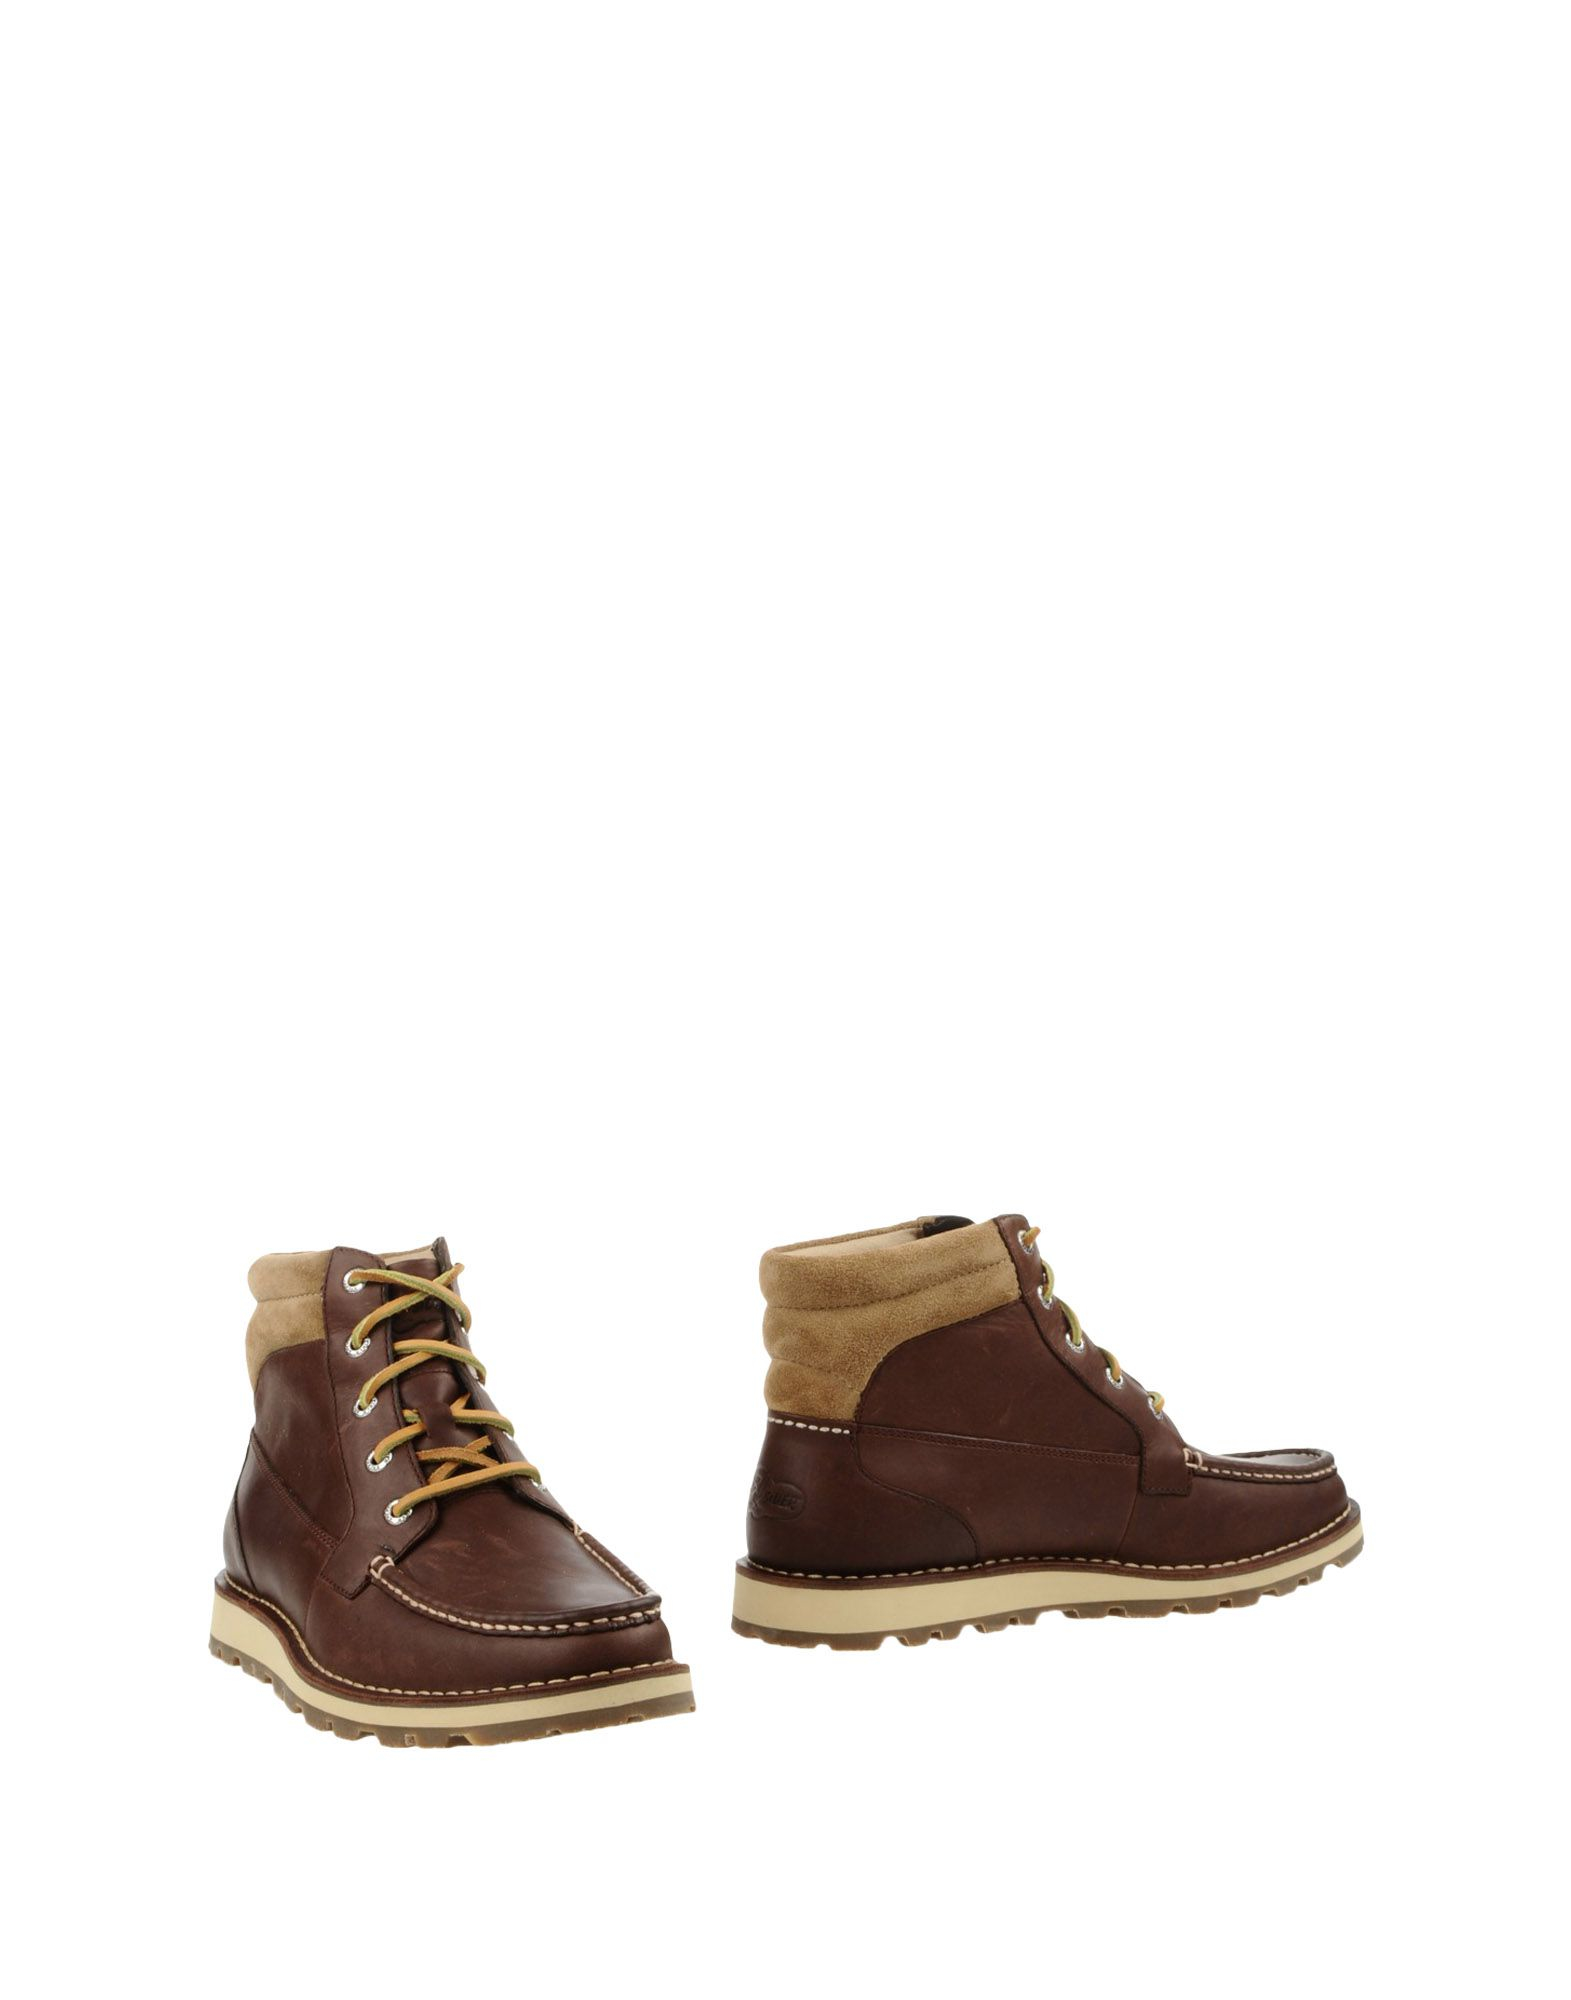 sperry top sider two toned leather ankle boots in brown